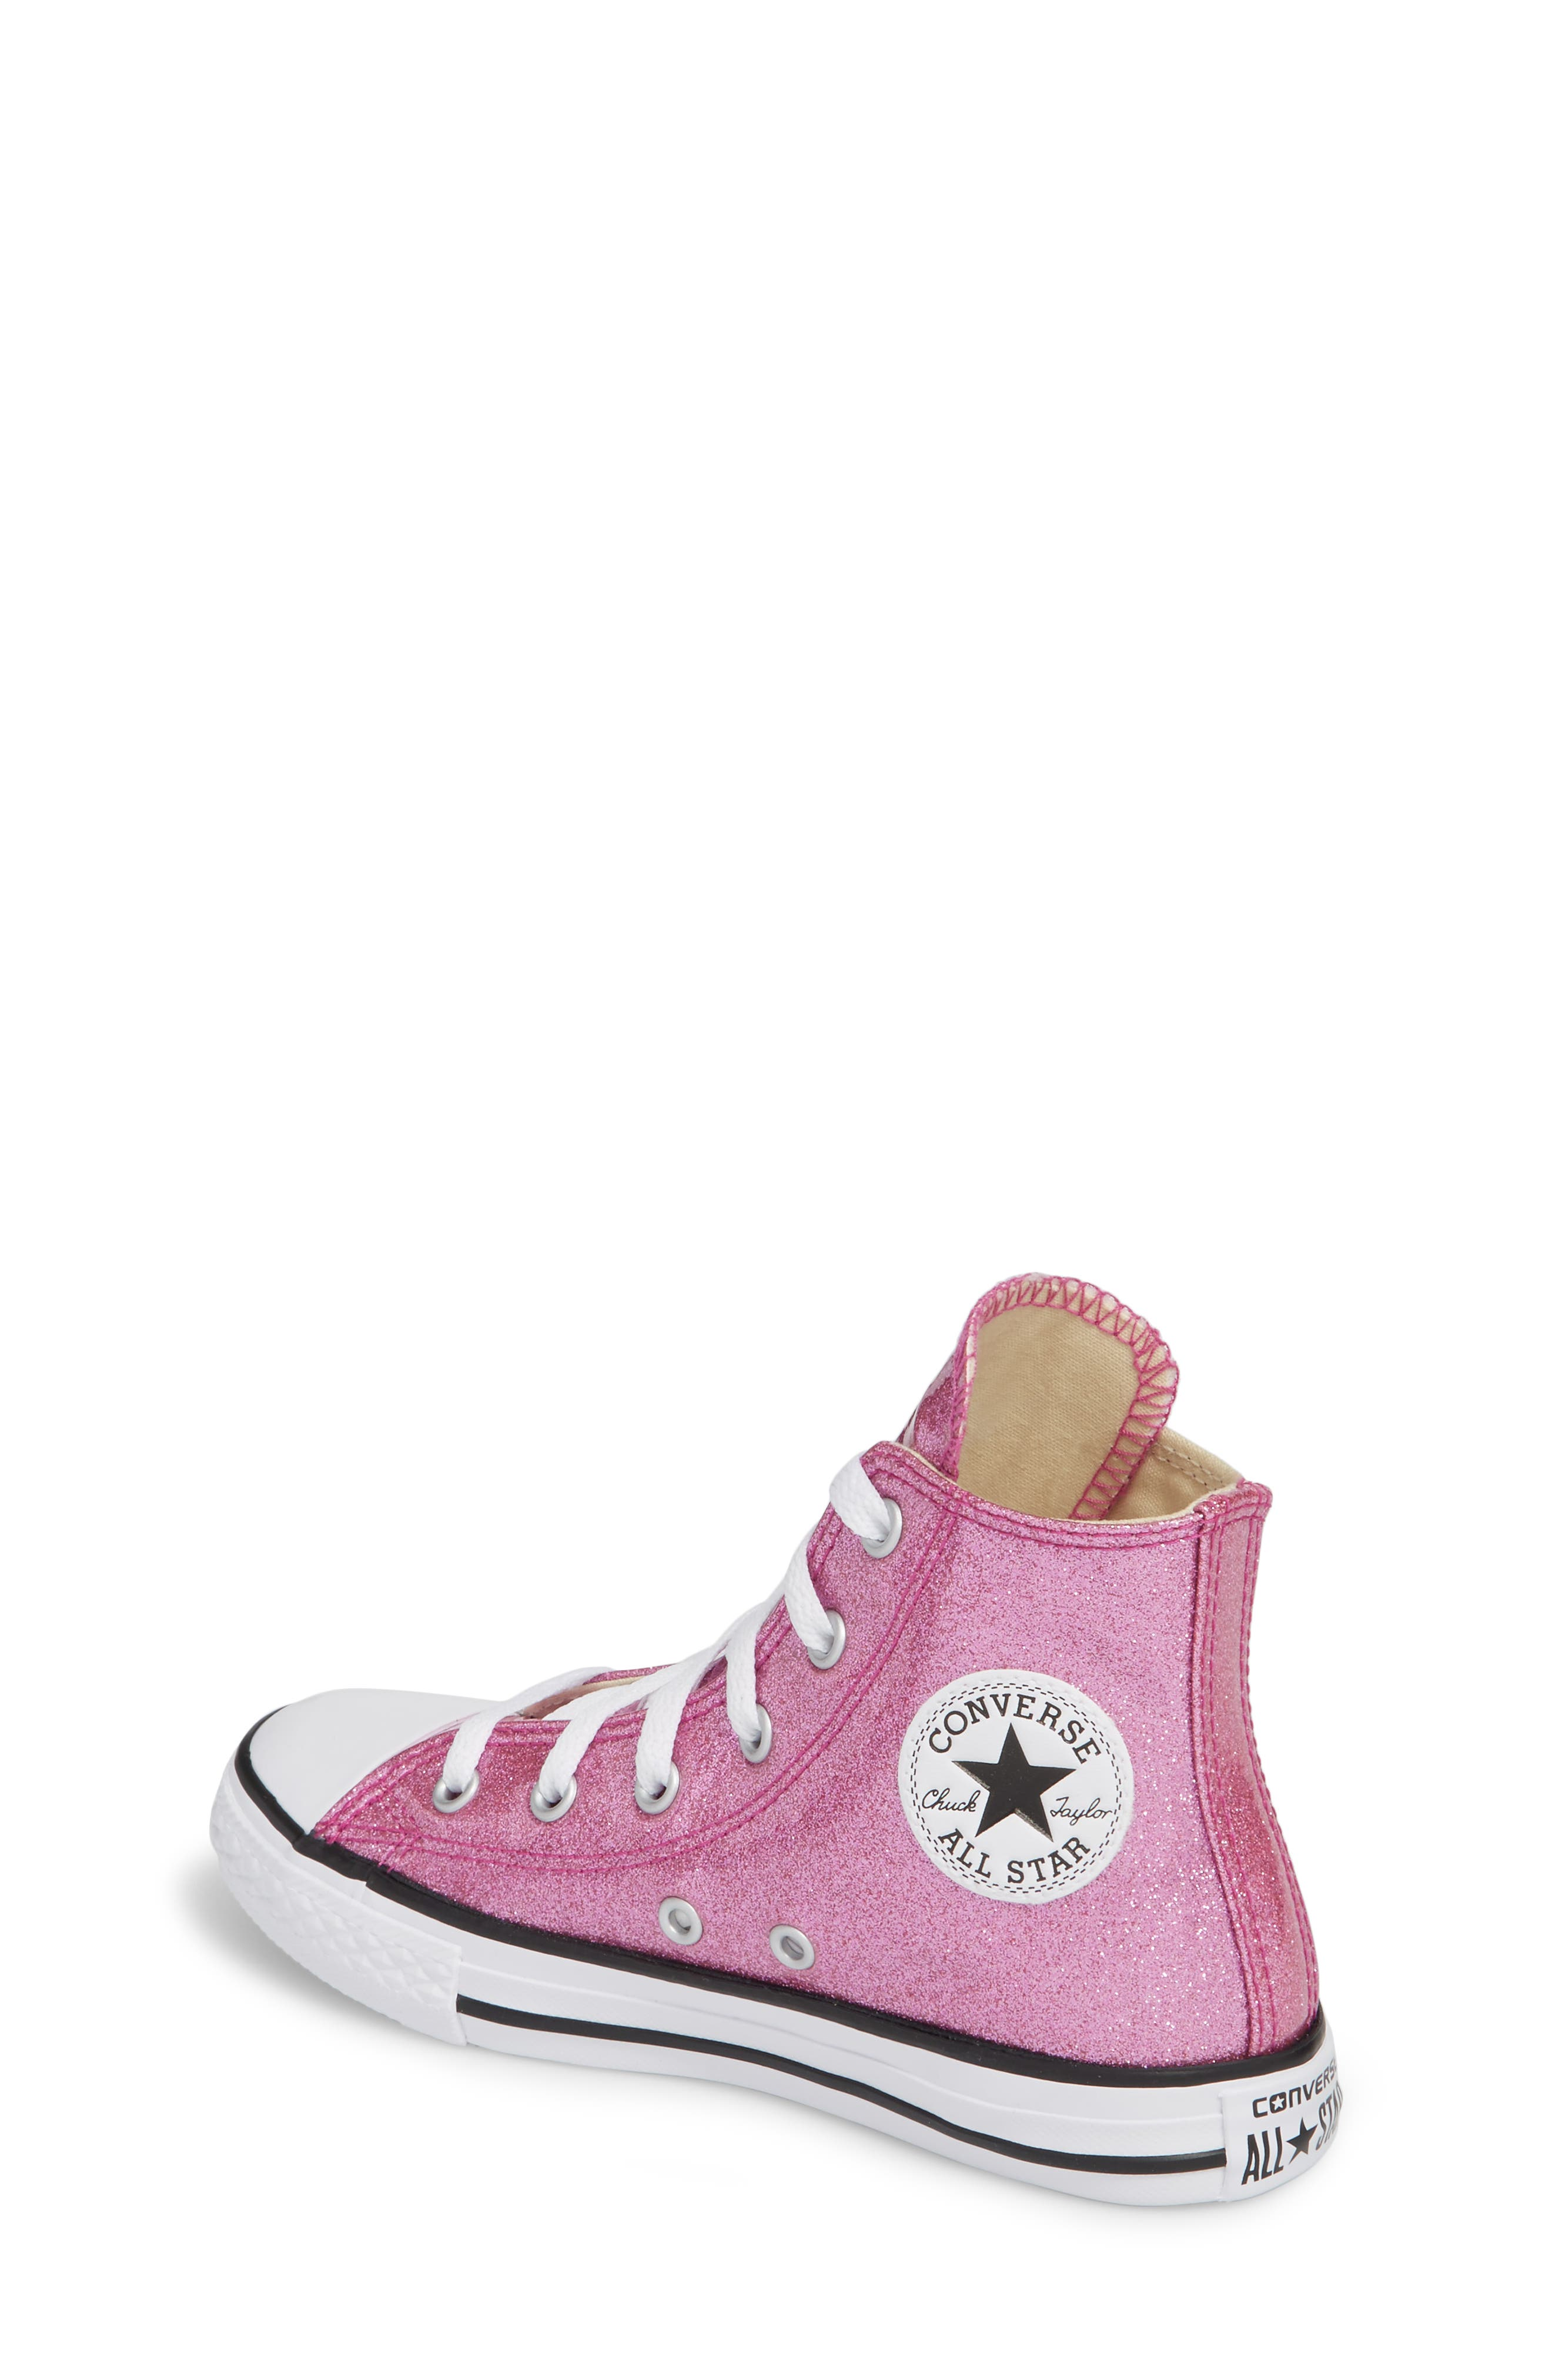 All Star<sup>®</sup> Glitter High Top Sneaker,                             Alternate thumbnail 2, color,                             Bright Violet